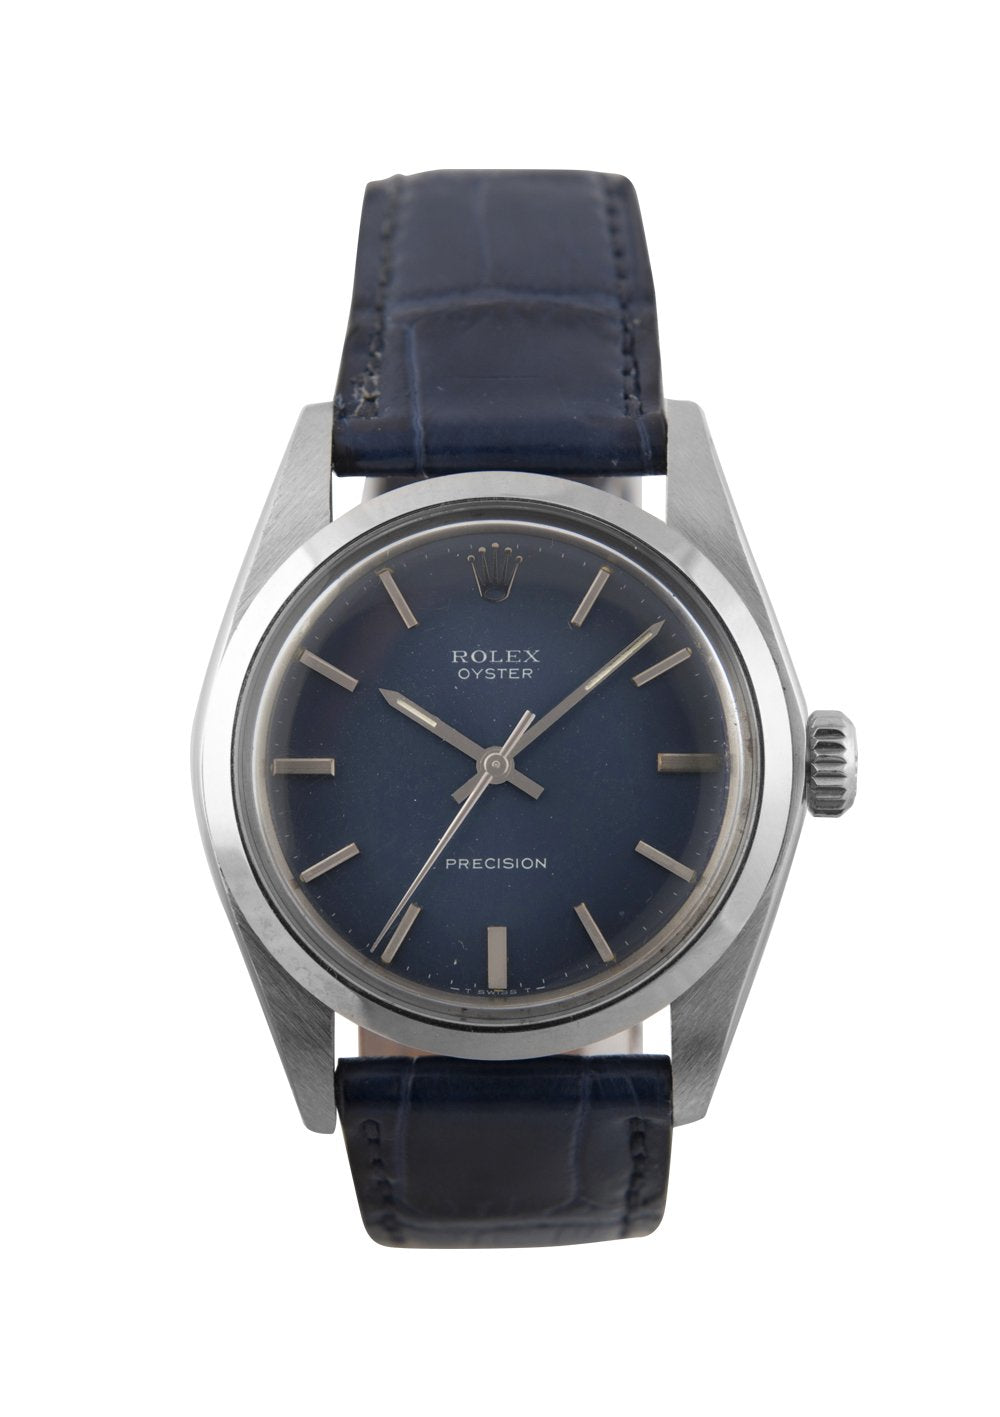 Rolex Oyster Steel Precision Watch with Blue Dial, 6426